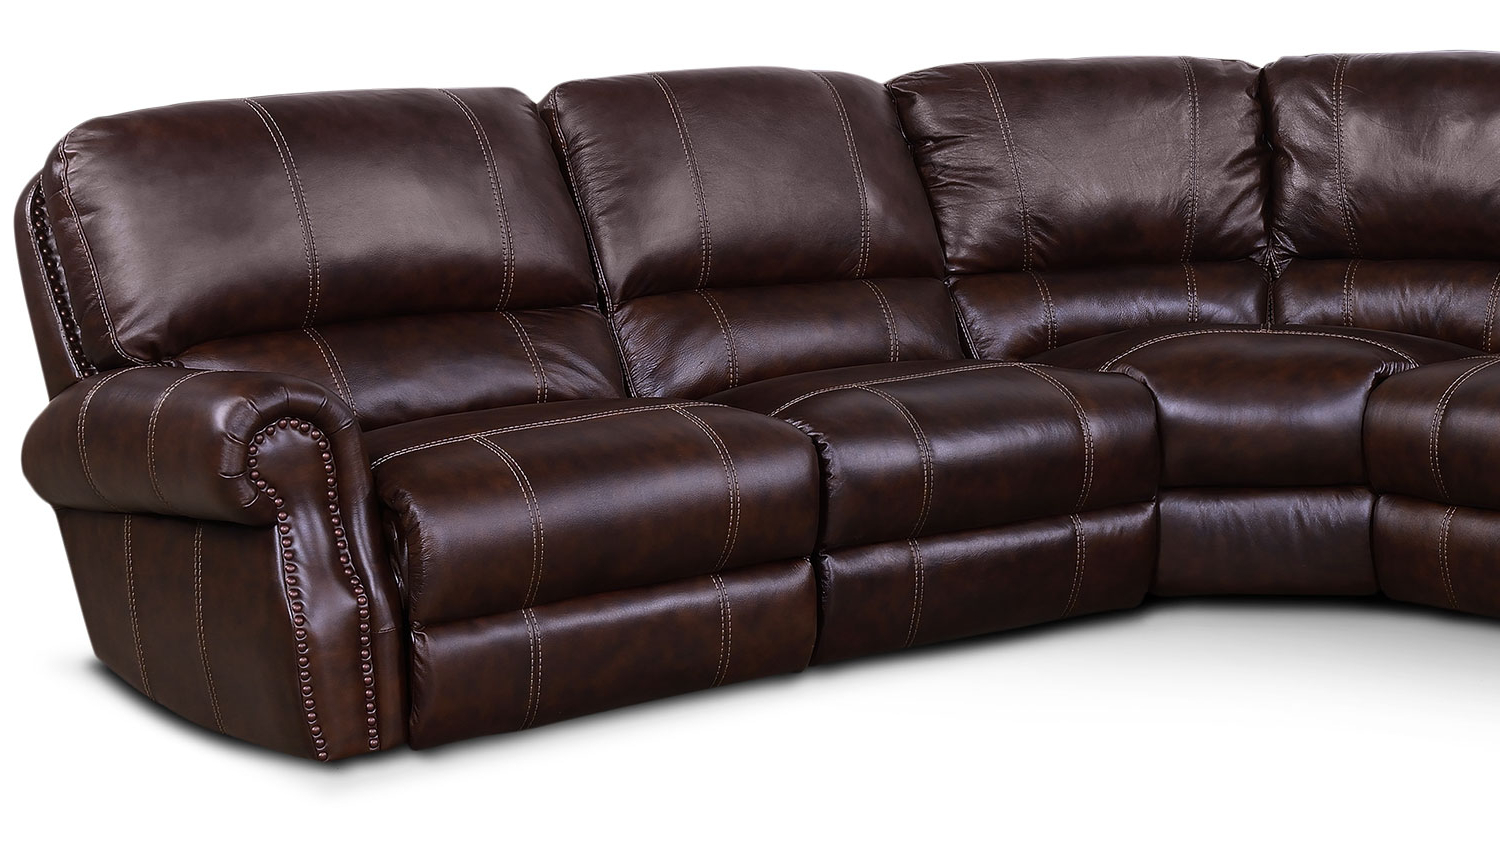 Dartmouth 6 Piece Power Reclining Sectional With 2 Reclining Seats Intended For Newest Norfolk Chocolate 3 Piece Sectionals With Raf Chaise (View 18 of 20)